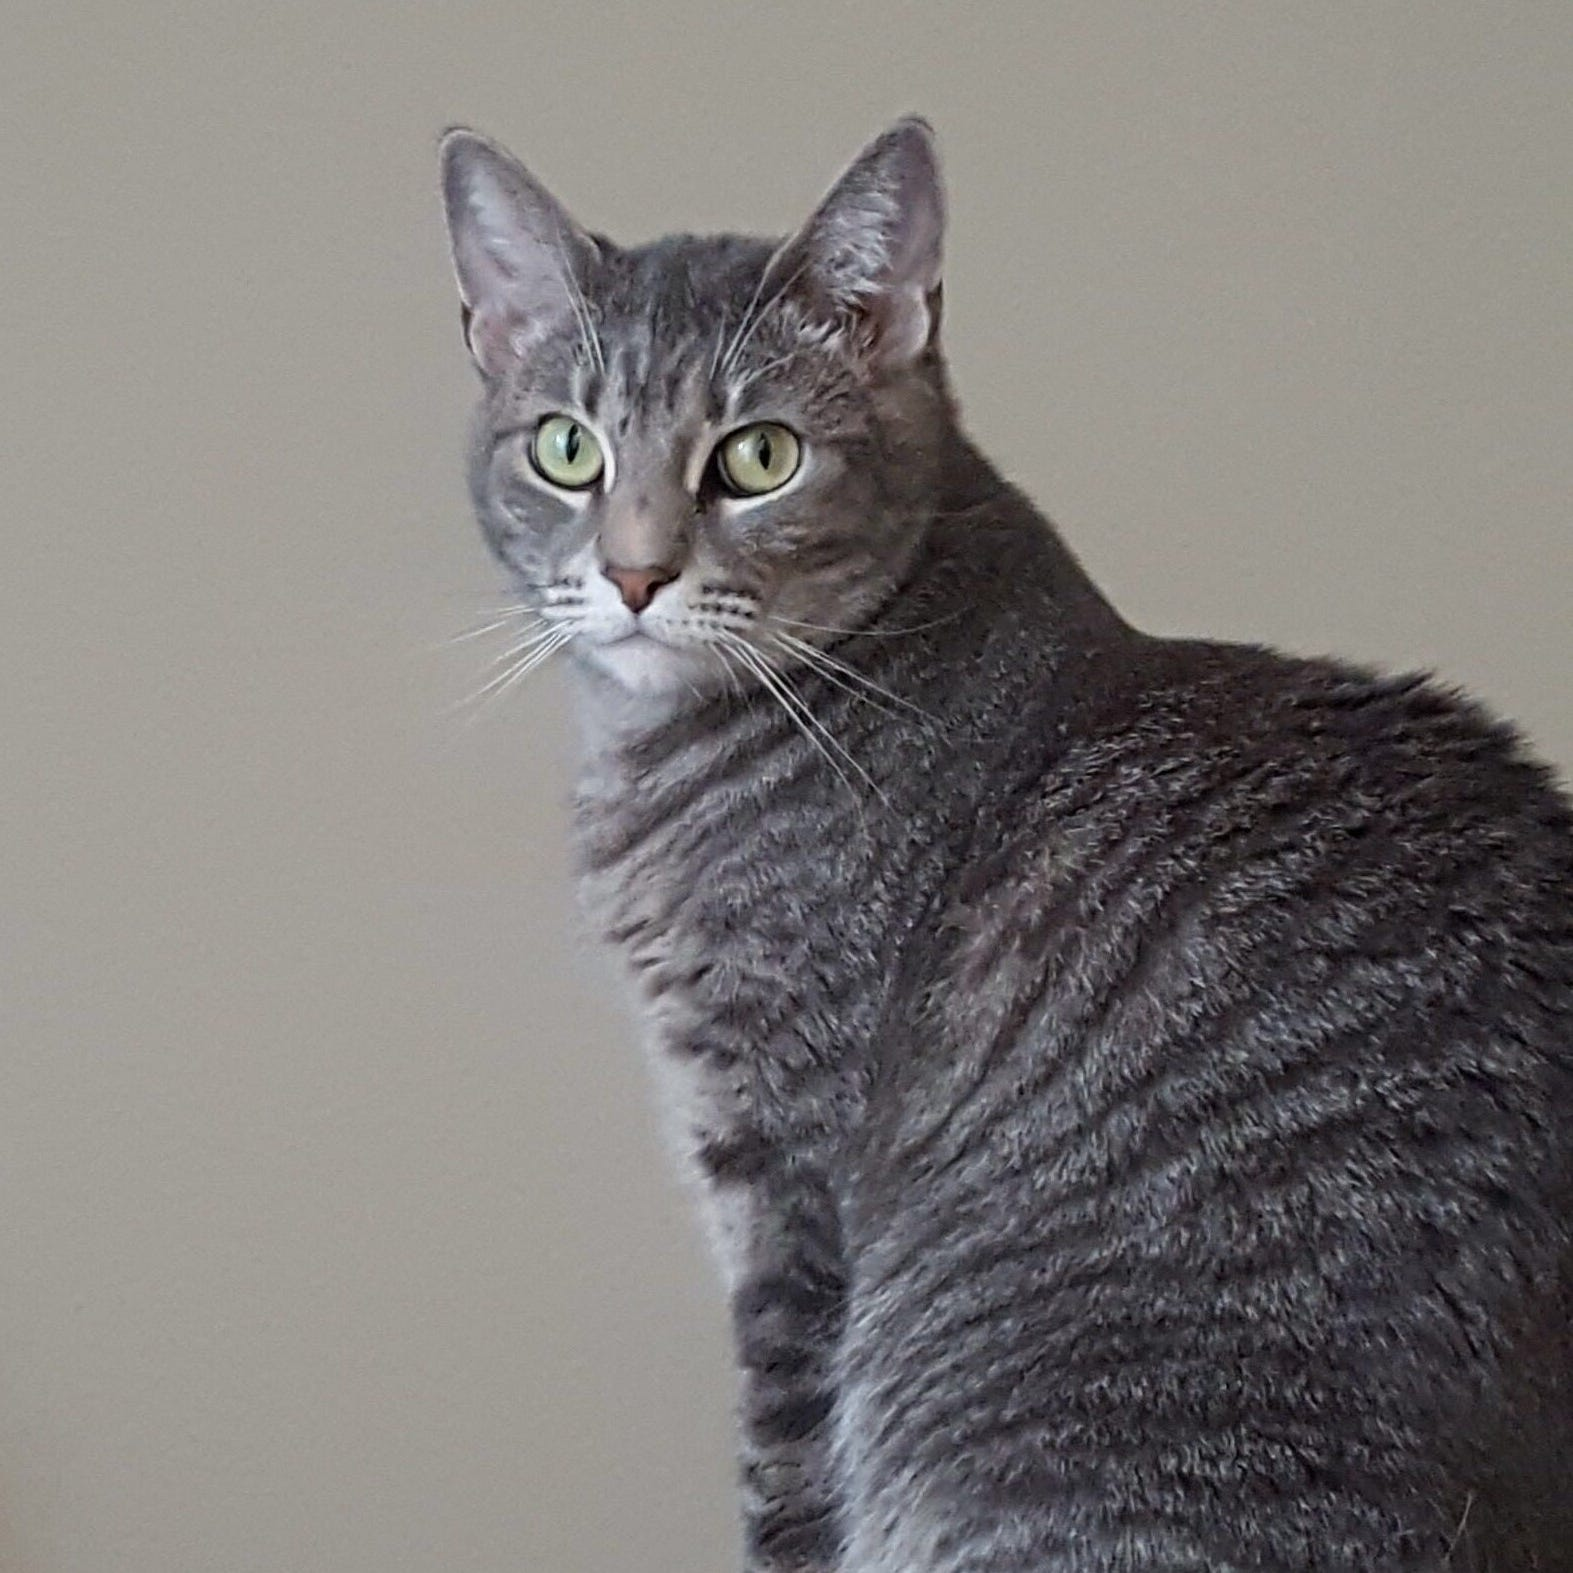 Bastet the cat hasn't been found, despite the best efforts of Wisconsinites